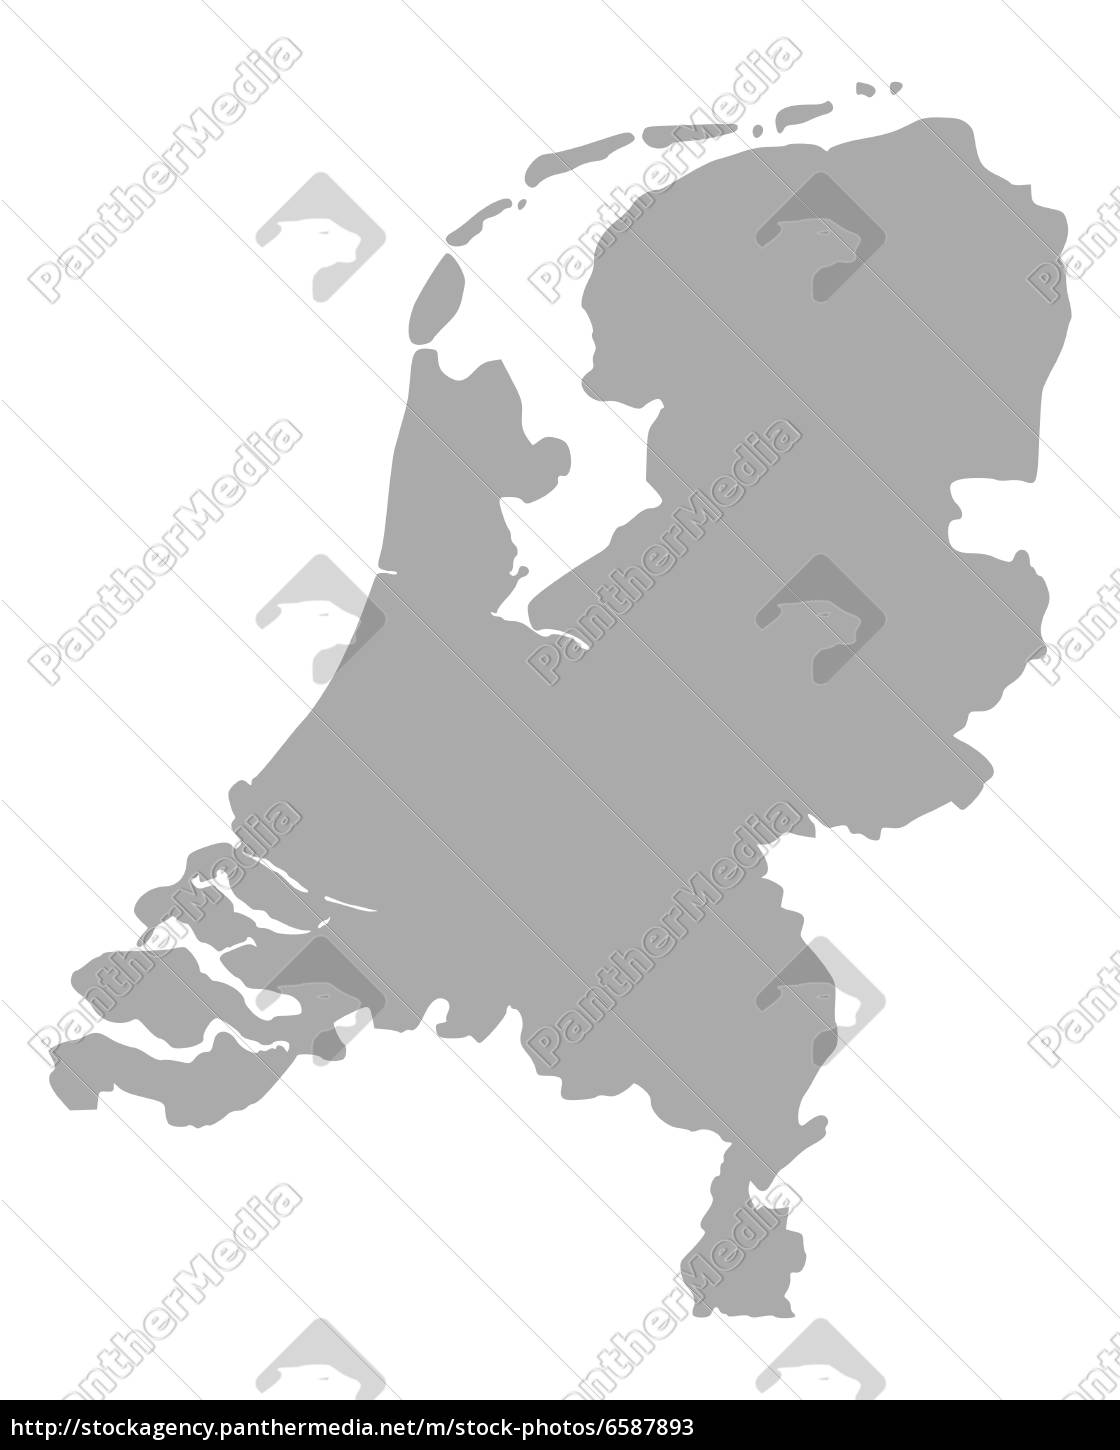 Byer I Holland Kort Kort Over Holland Byer Western Europe Europe